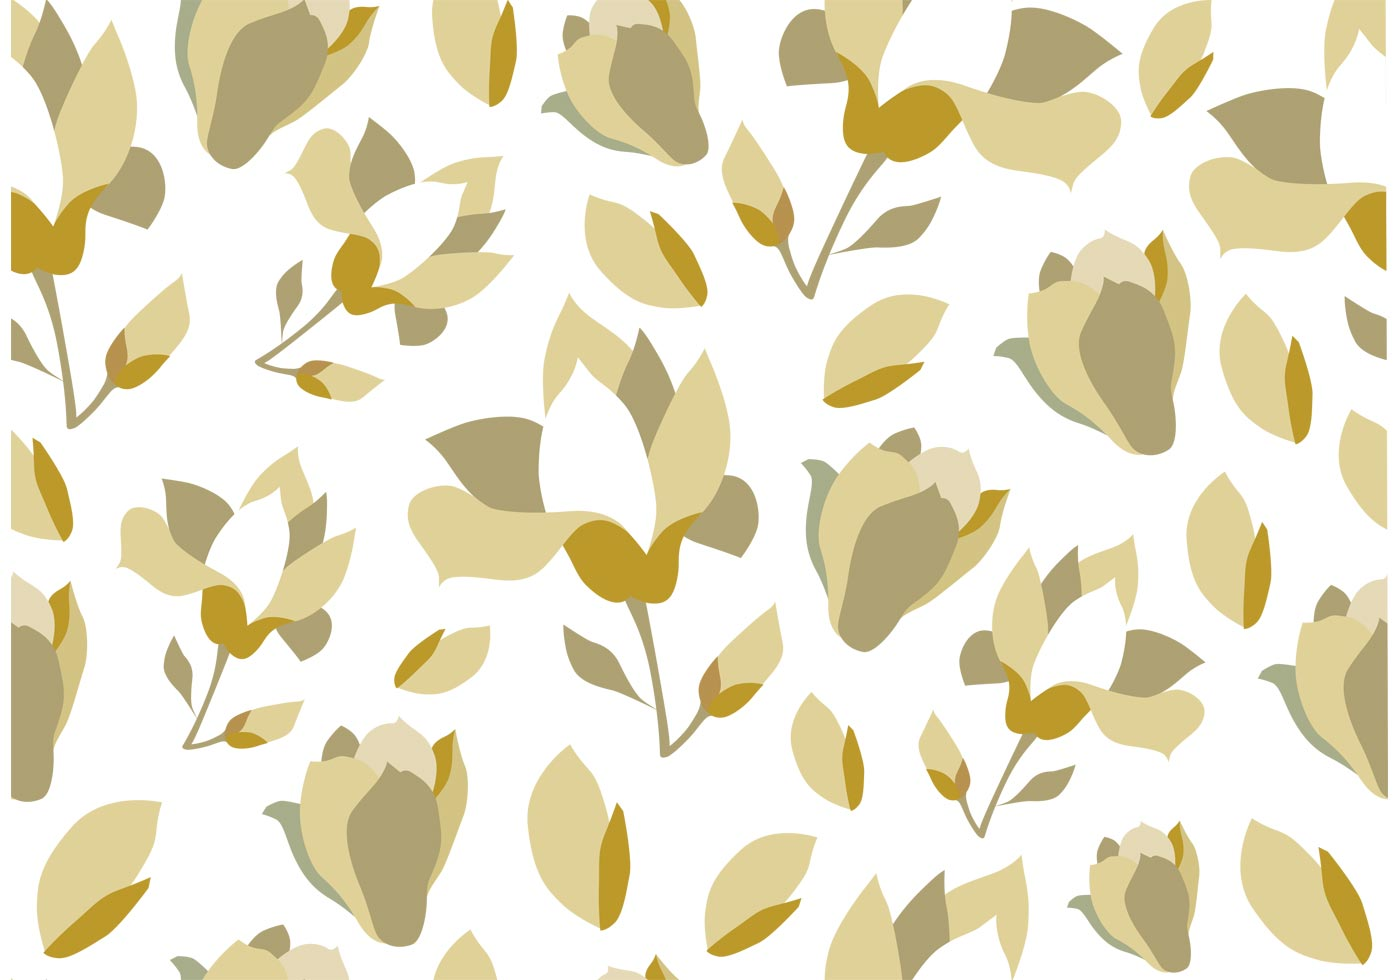 Seamless floral background download free vector art stock graphics images - Floral background ...